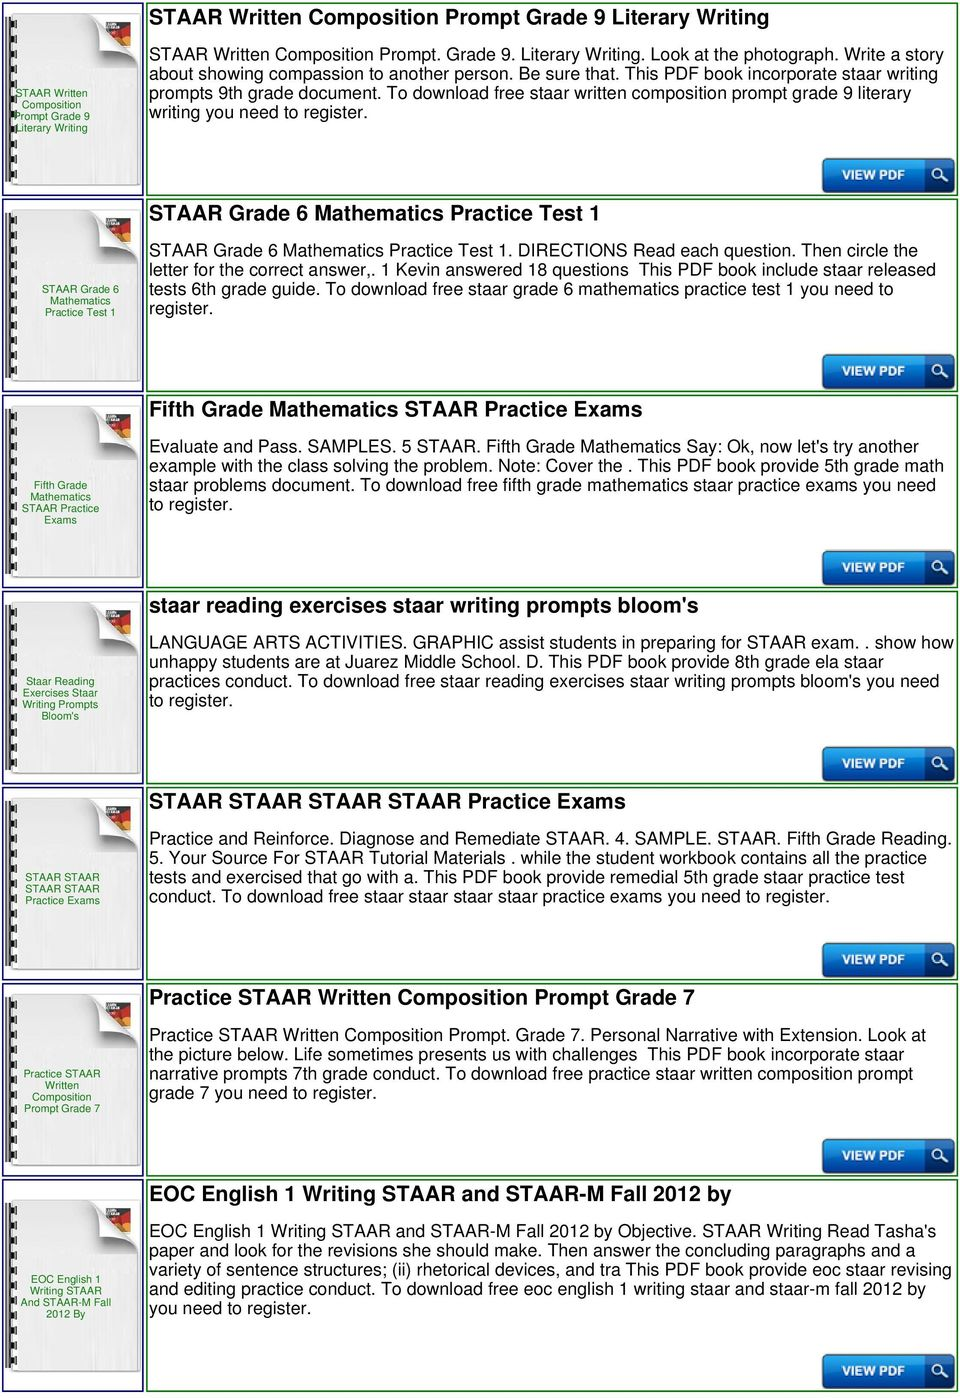 To download free staar written composition prompt grade 9 literary writing  you need to STAAR Grade